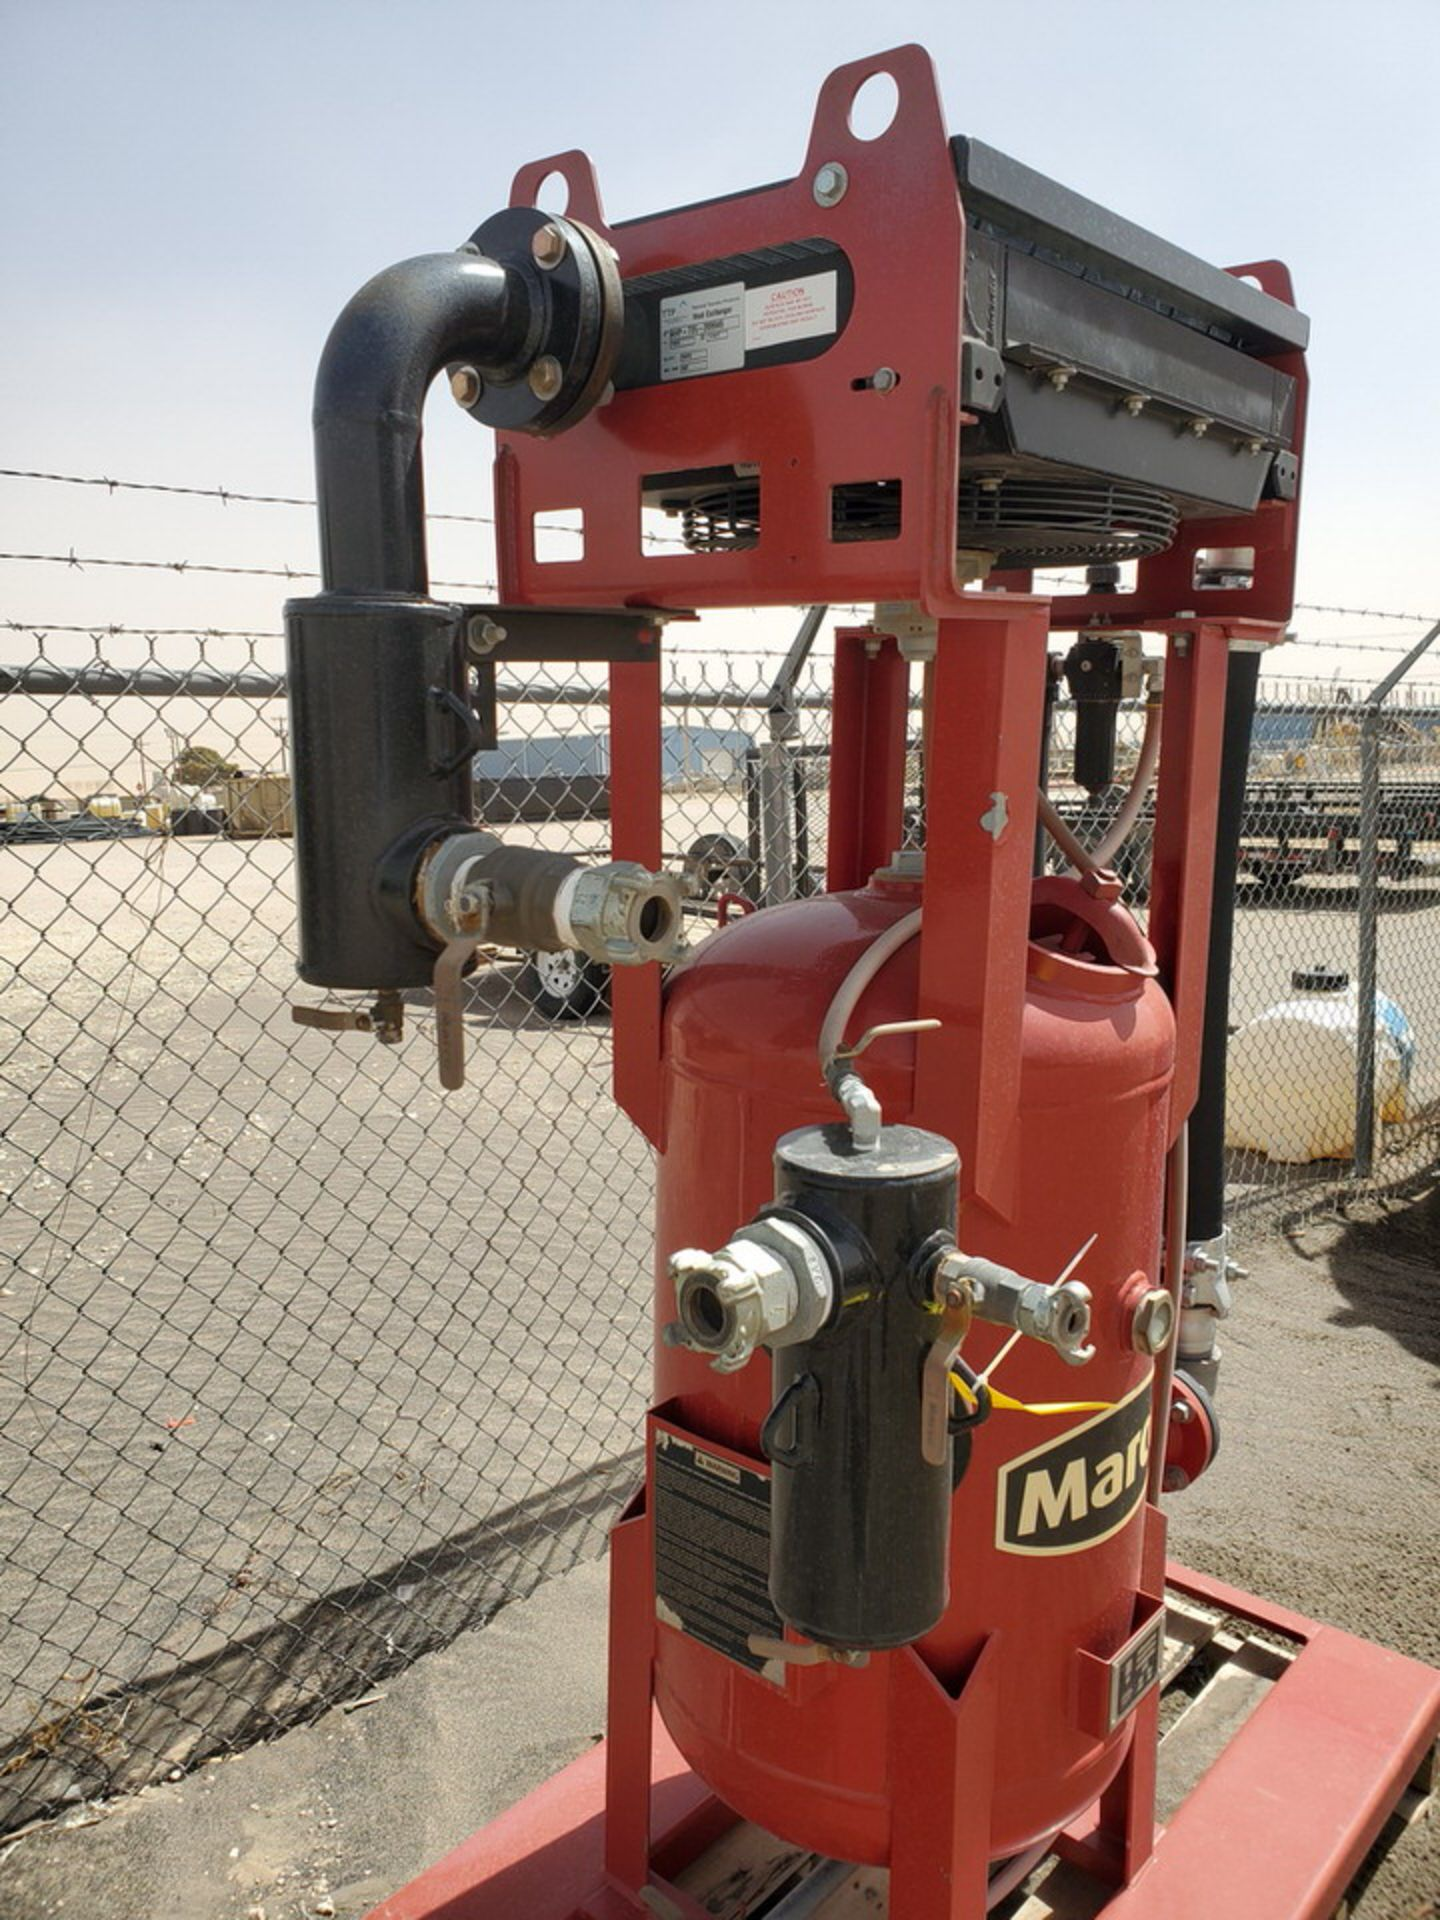 """2017 Marco Air Dryer 150psi@250F, -20@150psi, Vessel Dims: 30"""" Seam To Seam; Overall Dims: 72"""" x 35"""" - Image 8 of 11"""